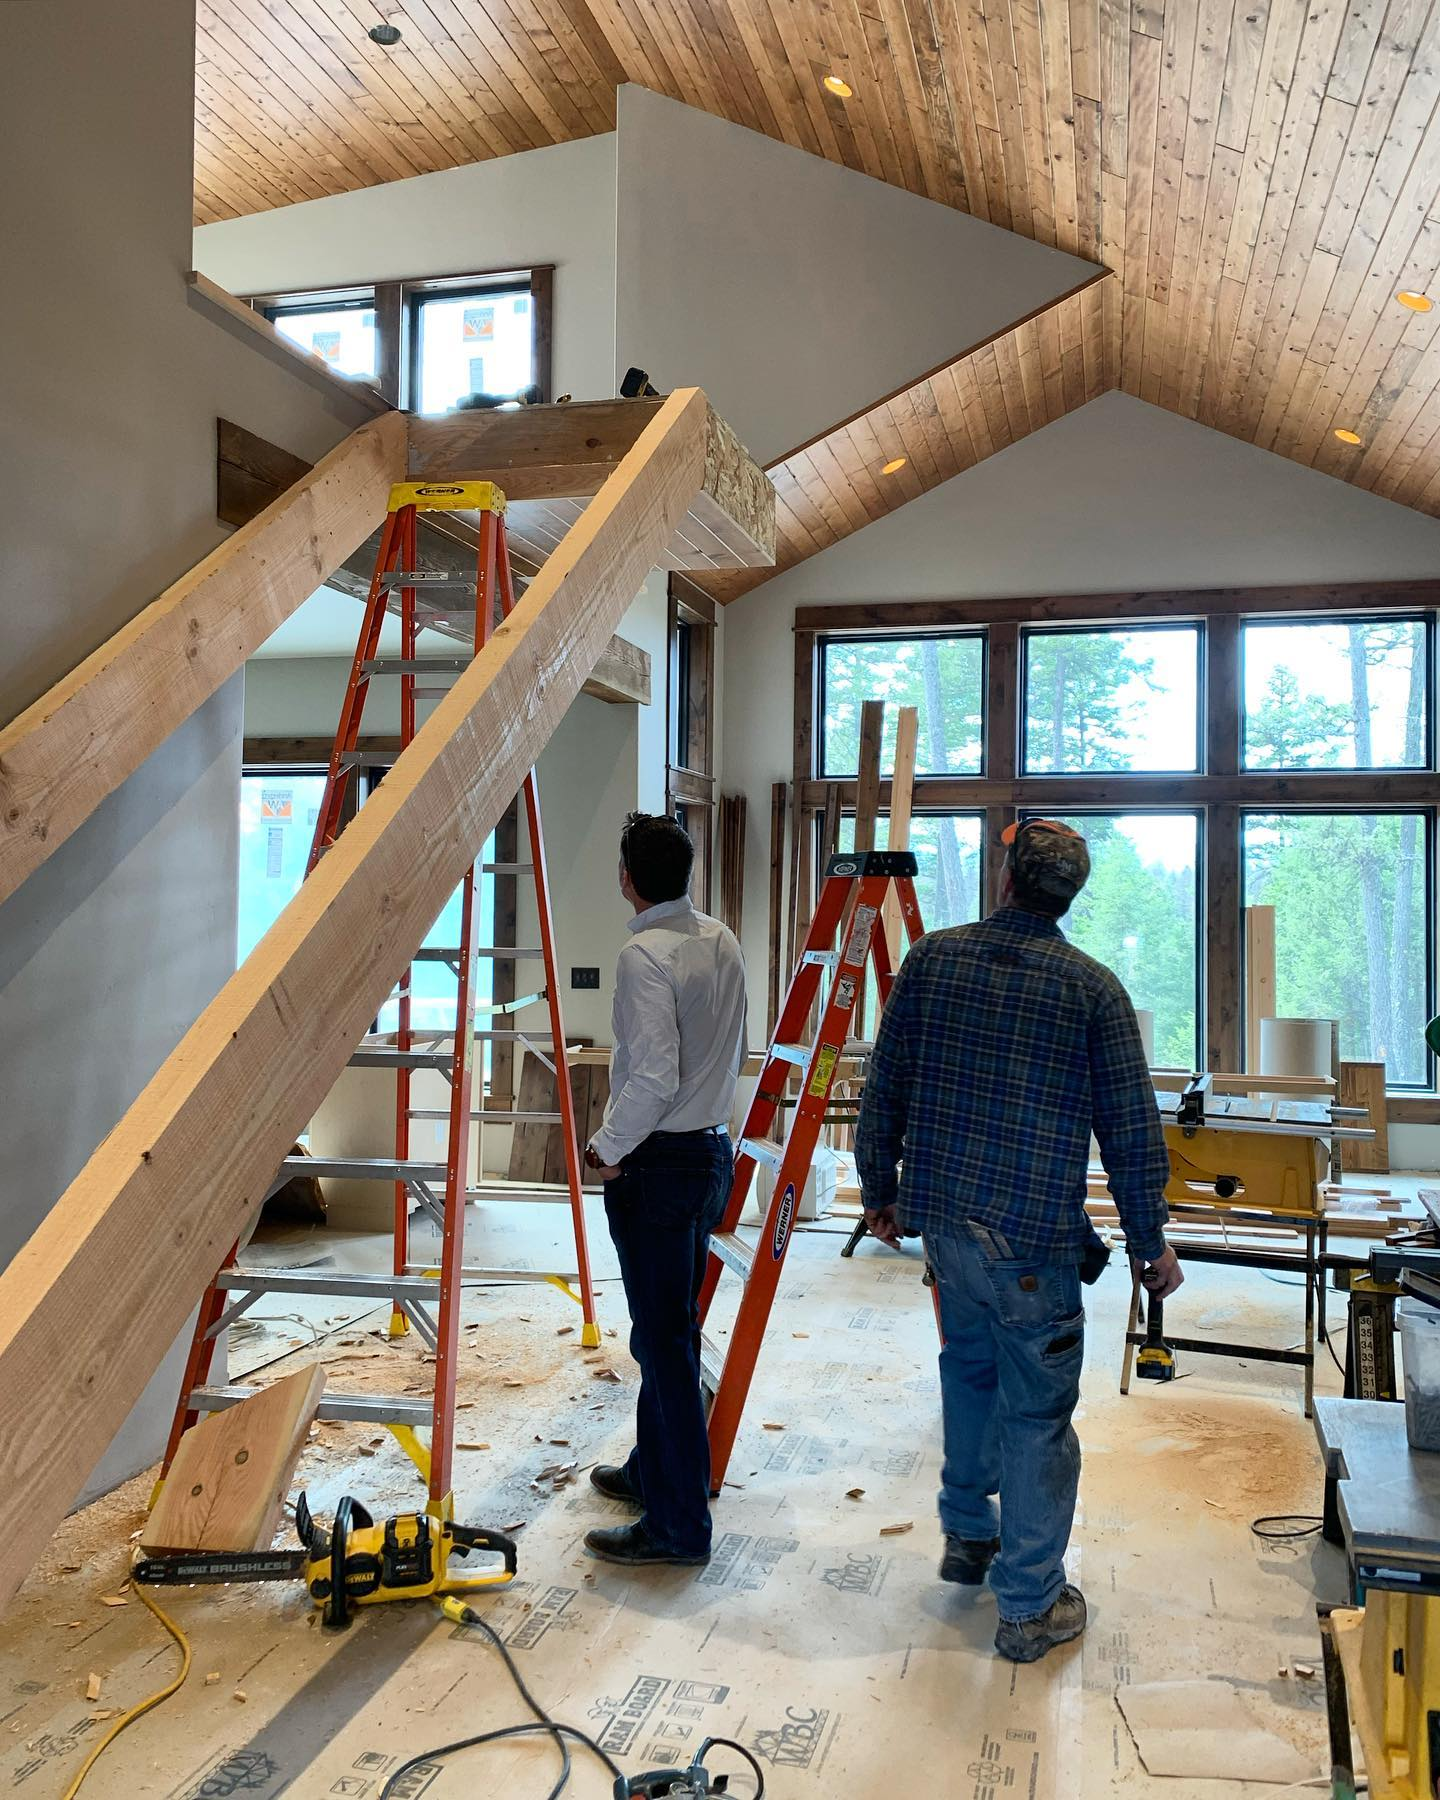 Lots of angles going on in this space! And after all this time we are getting stairs!! whitefish custom home builder